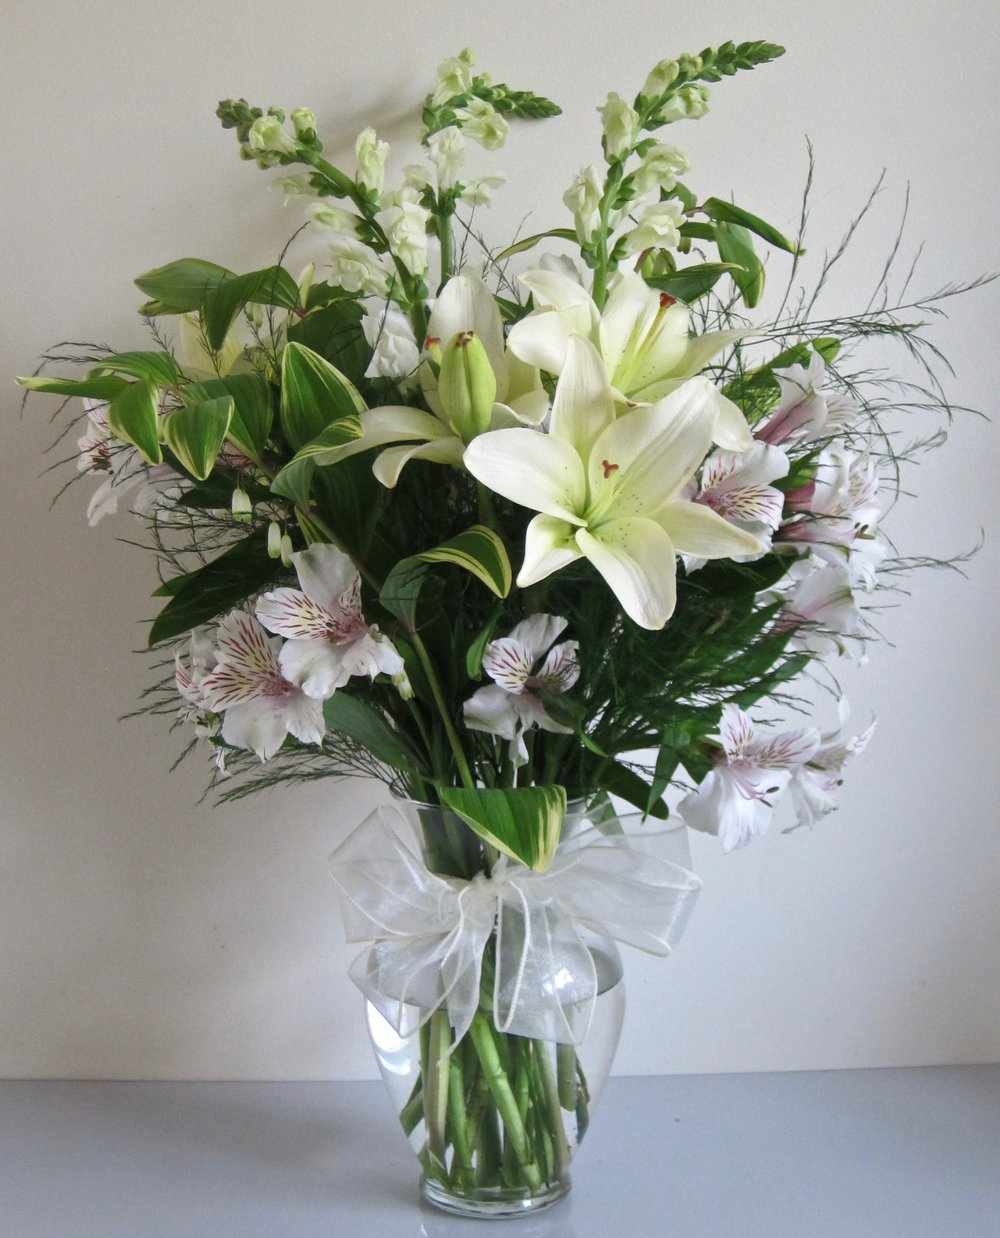 GREEN and WHITE bouquet featuring lillies, snapdragons, solomon's seal, ferns and alstroemeria, $55.